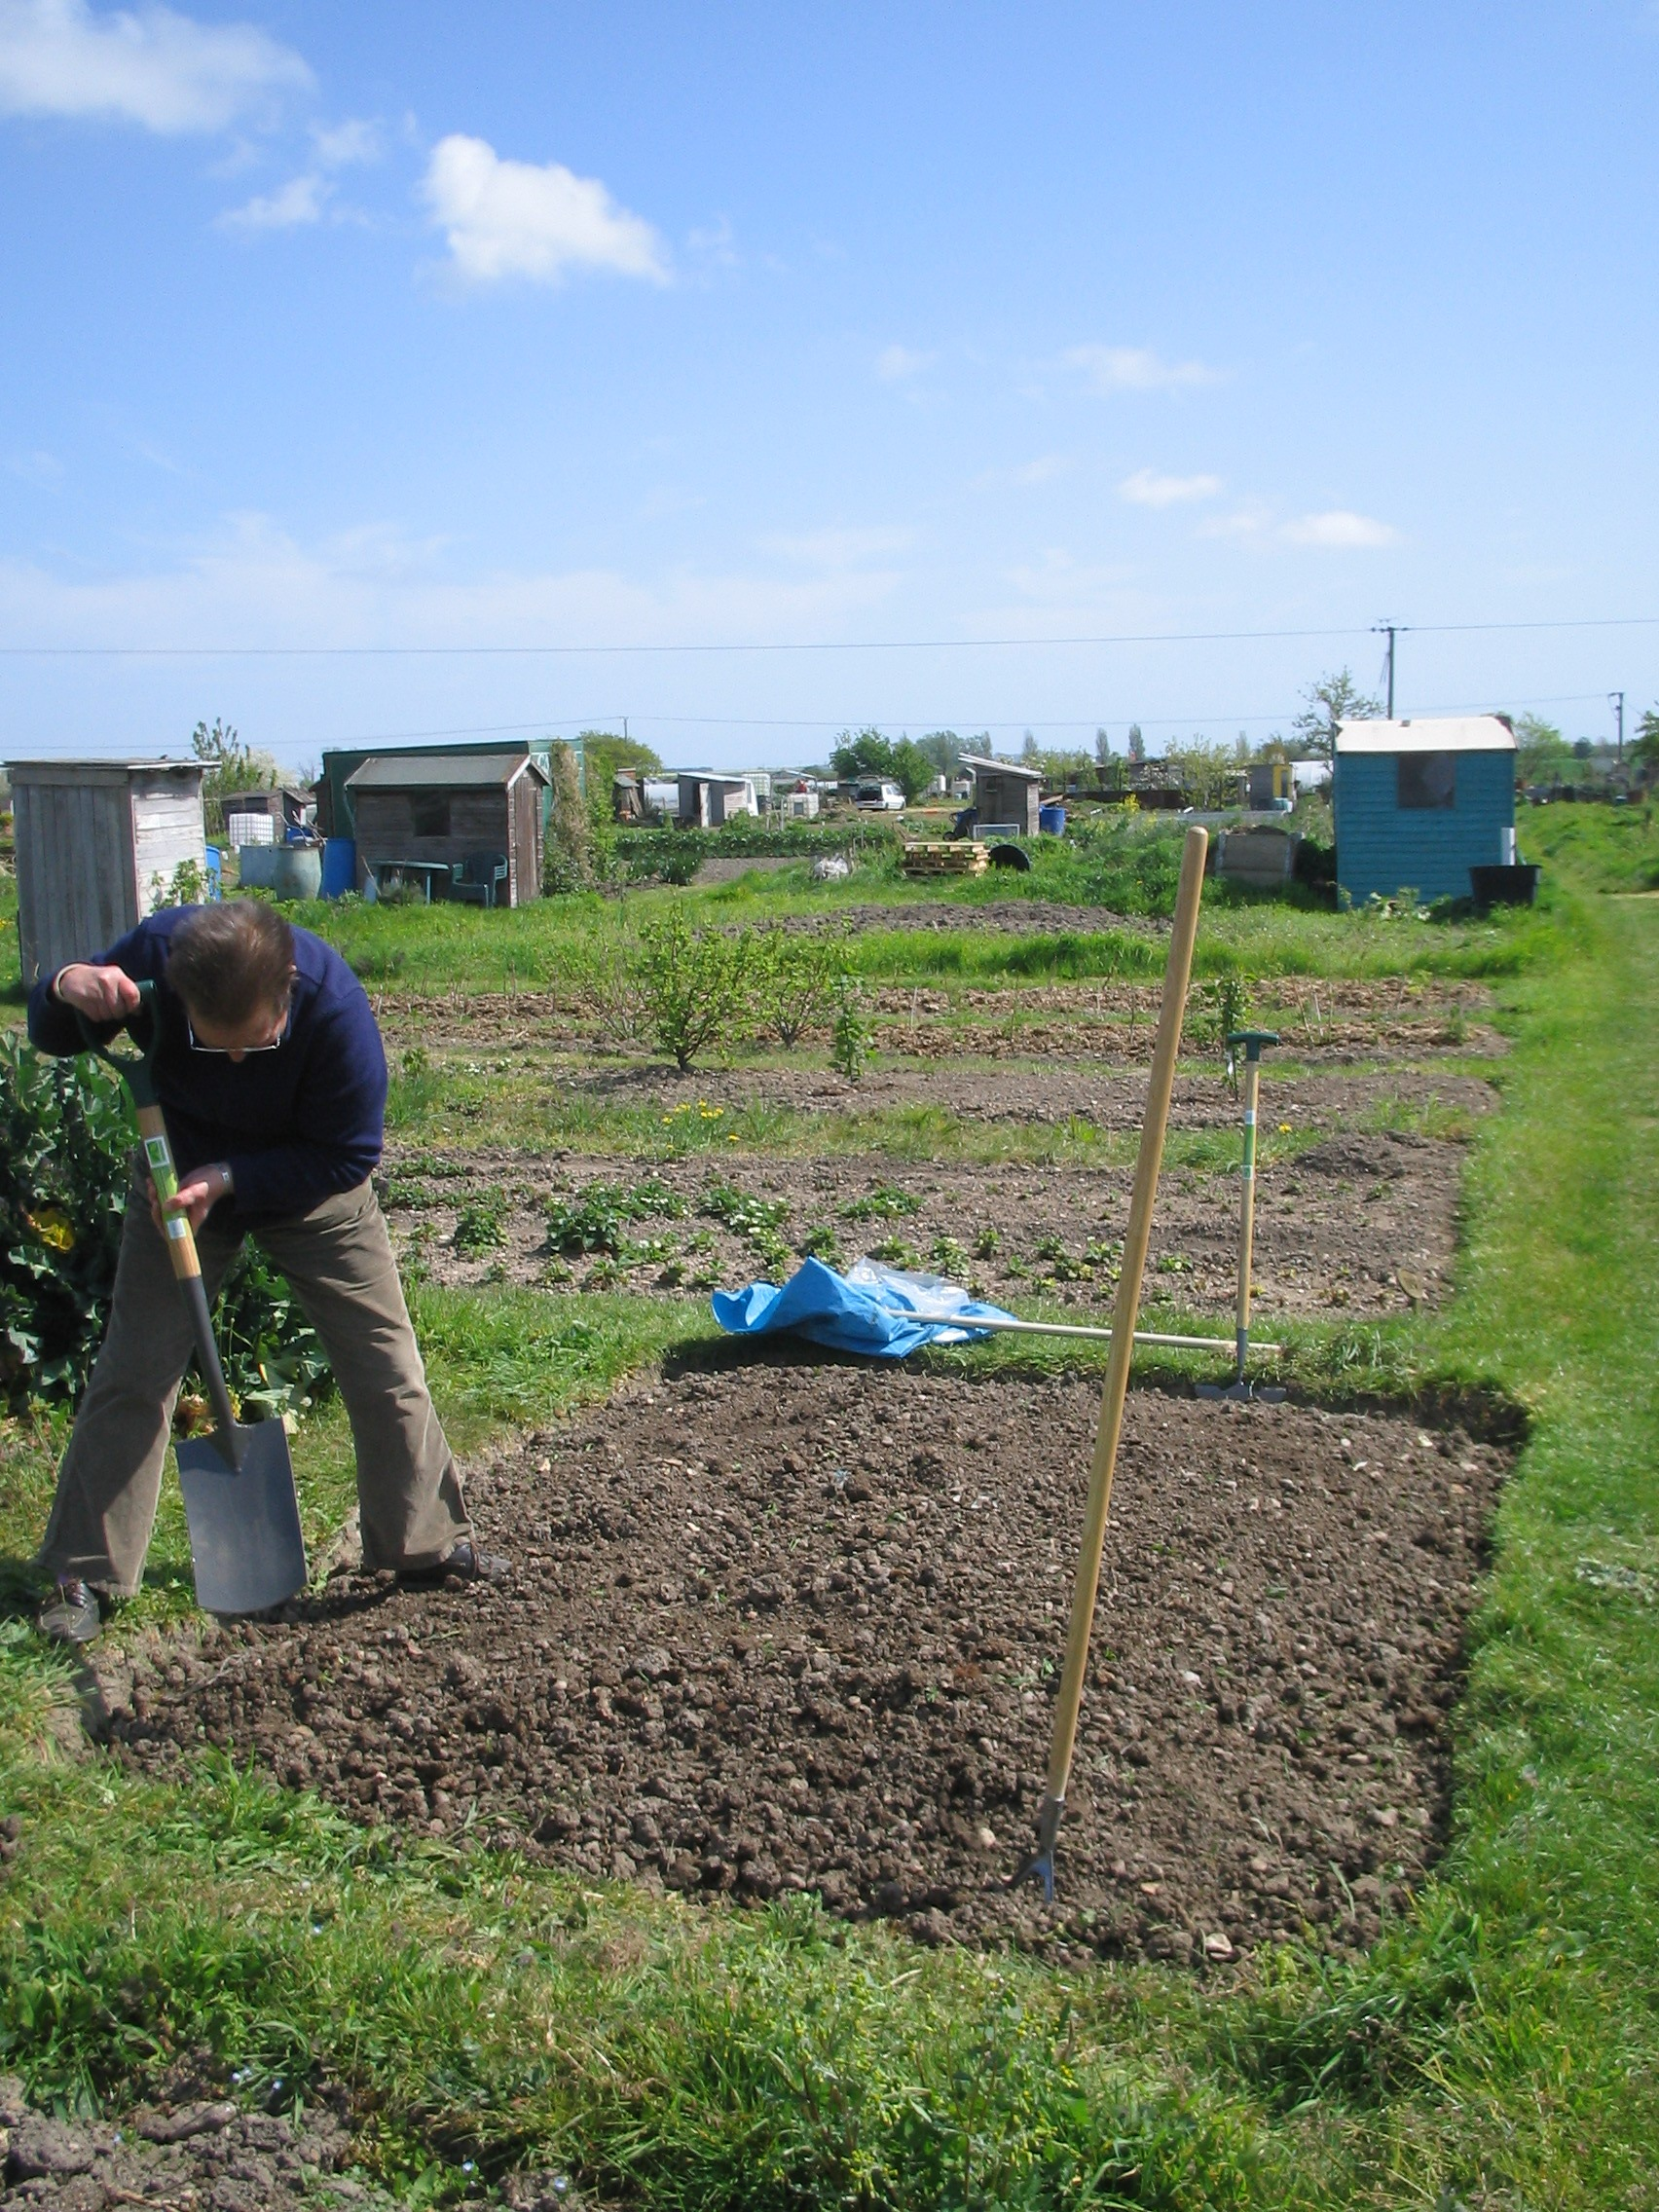 Digging on the Allotment